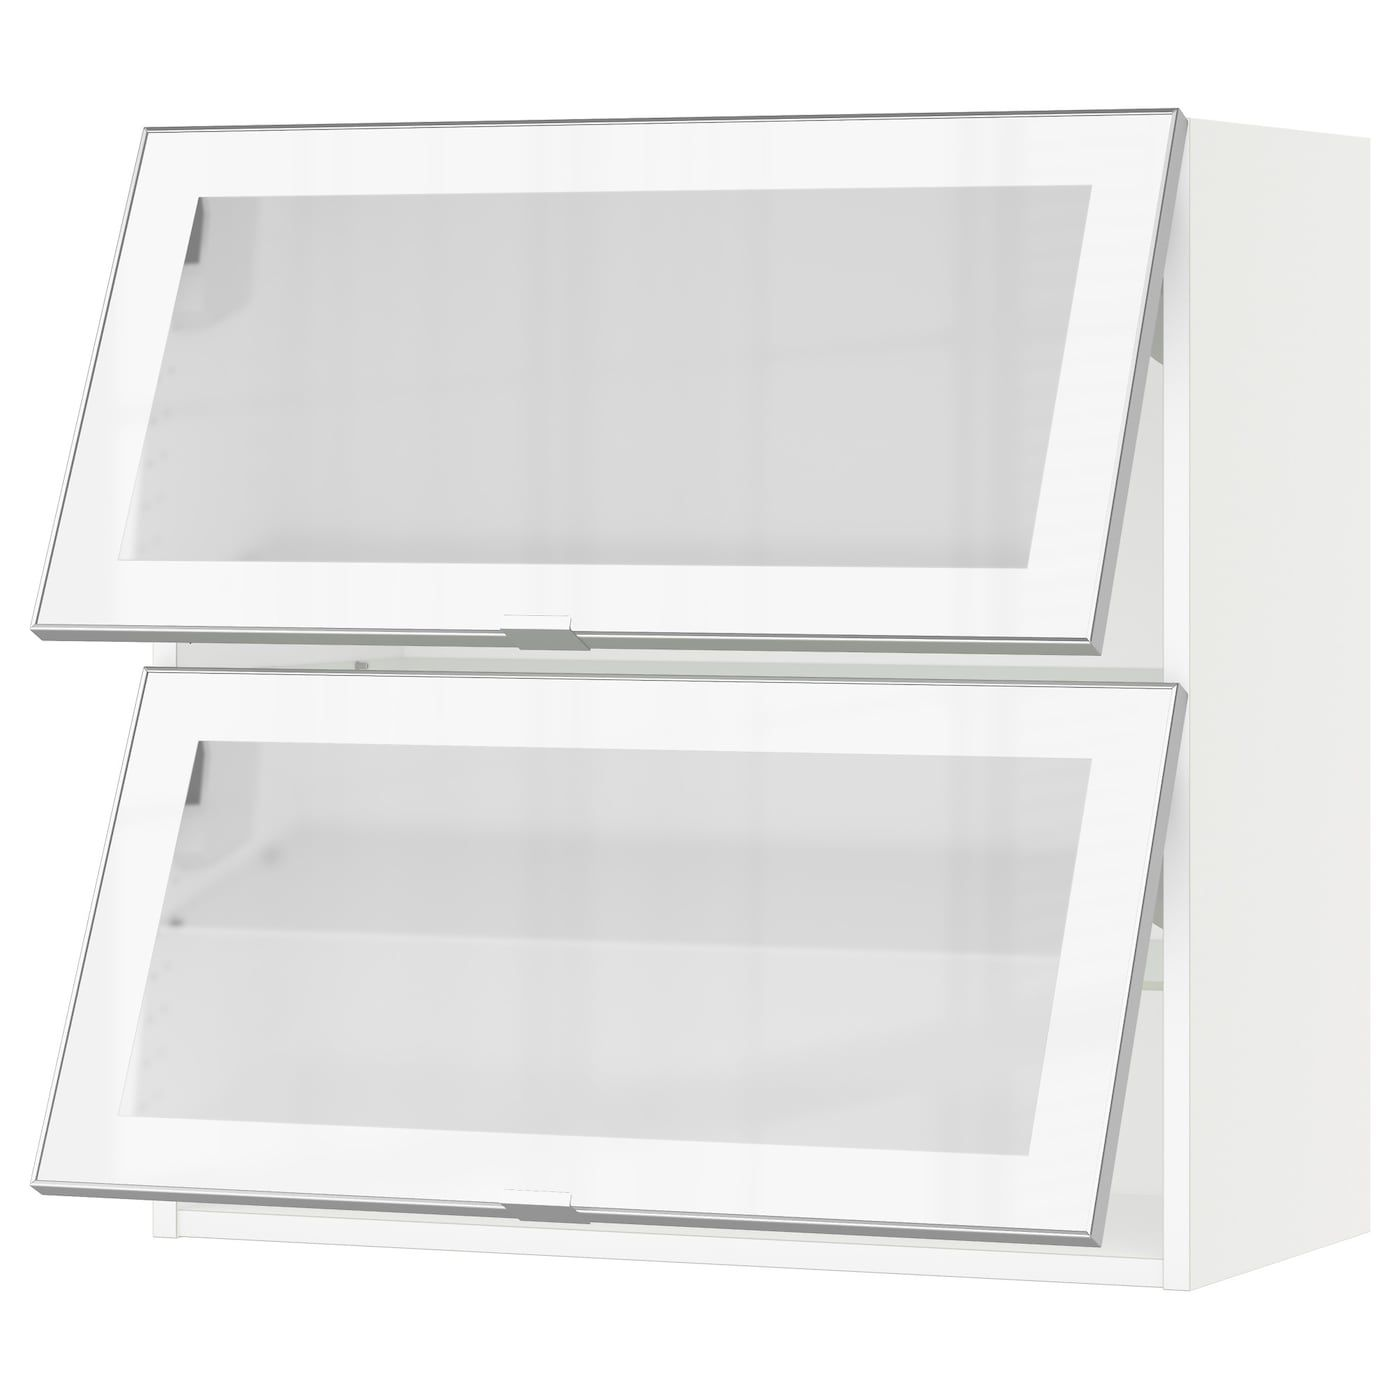 Sektion Horizontal Wall Cabinet 2glass Door White Jutis Frosted Glass 30x15x30 Ikea In 2020 Wall Cabinet Kitchen Wall Cabinets Frosted Glass